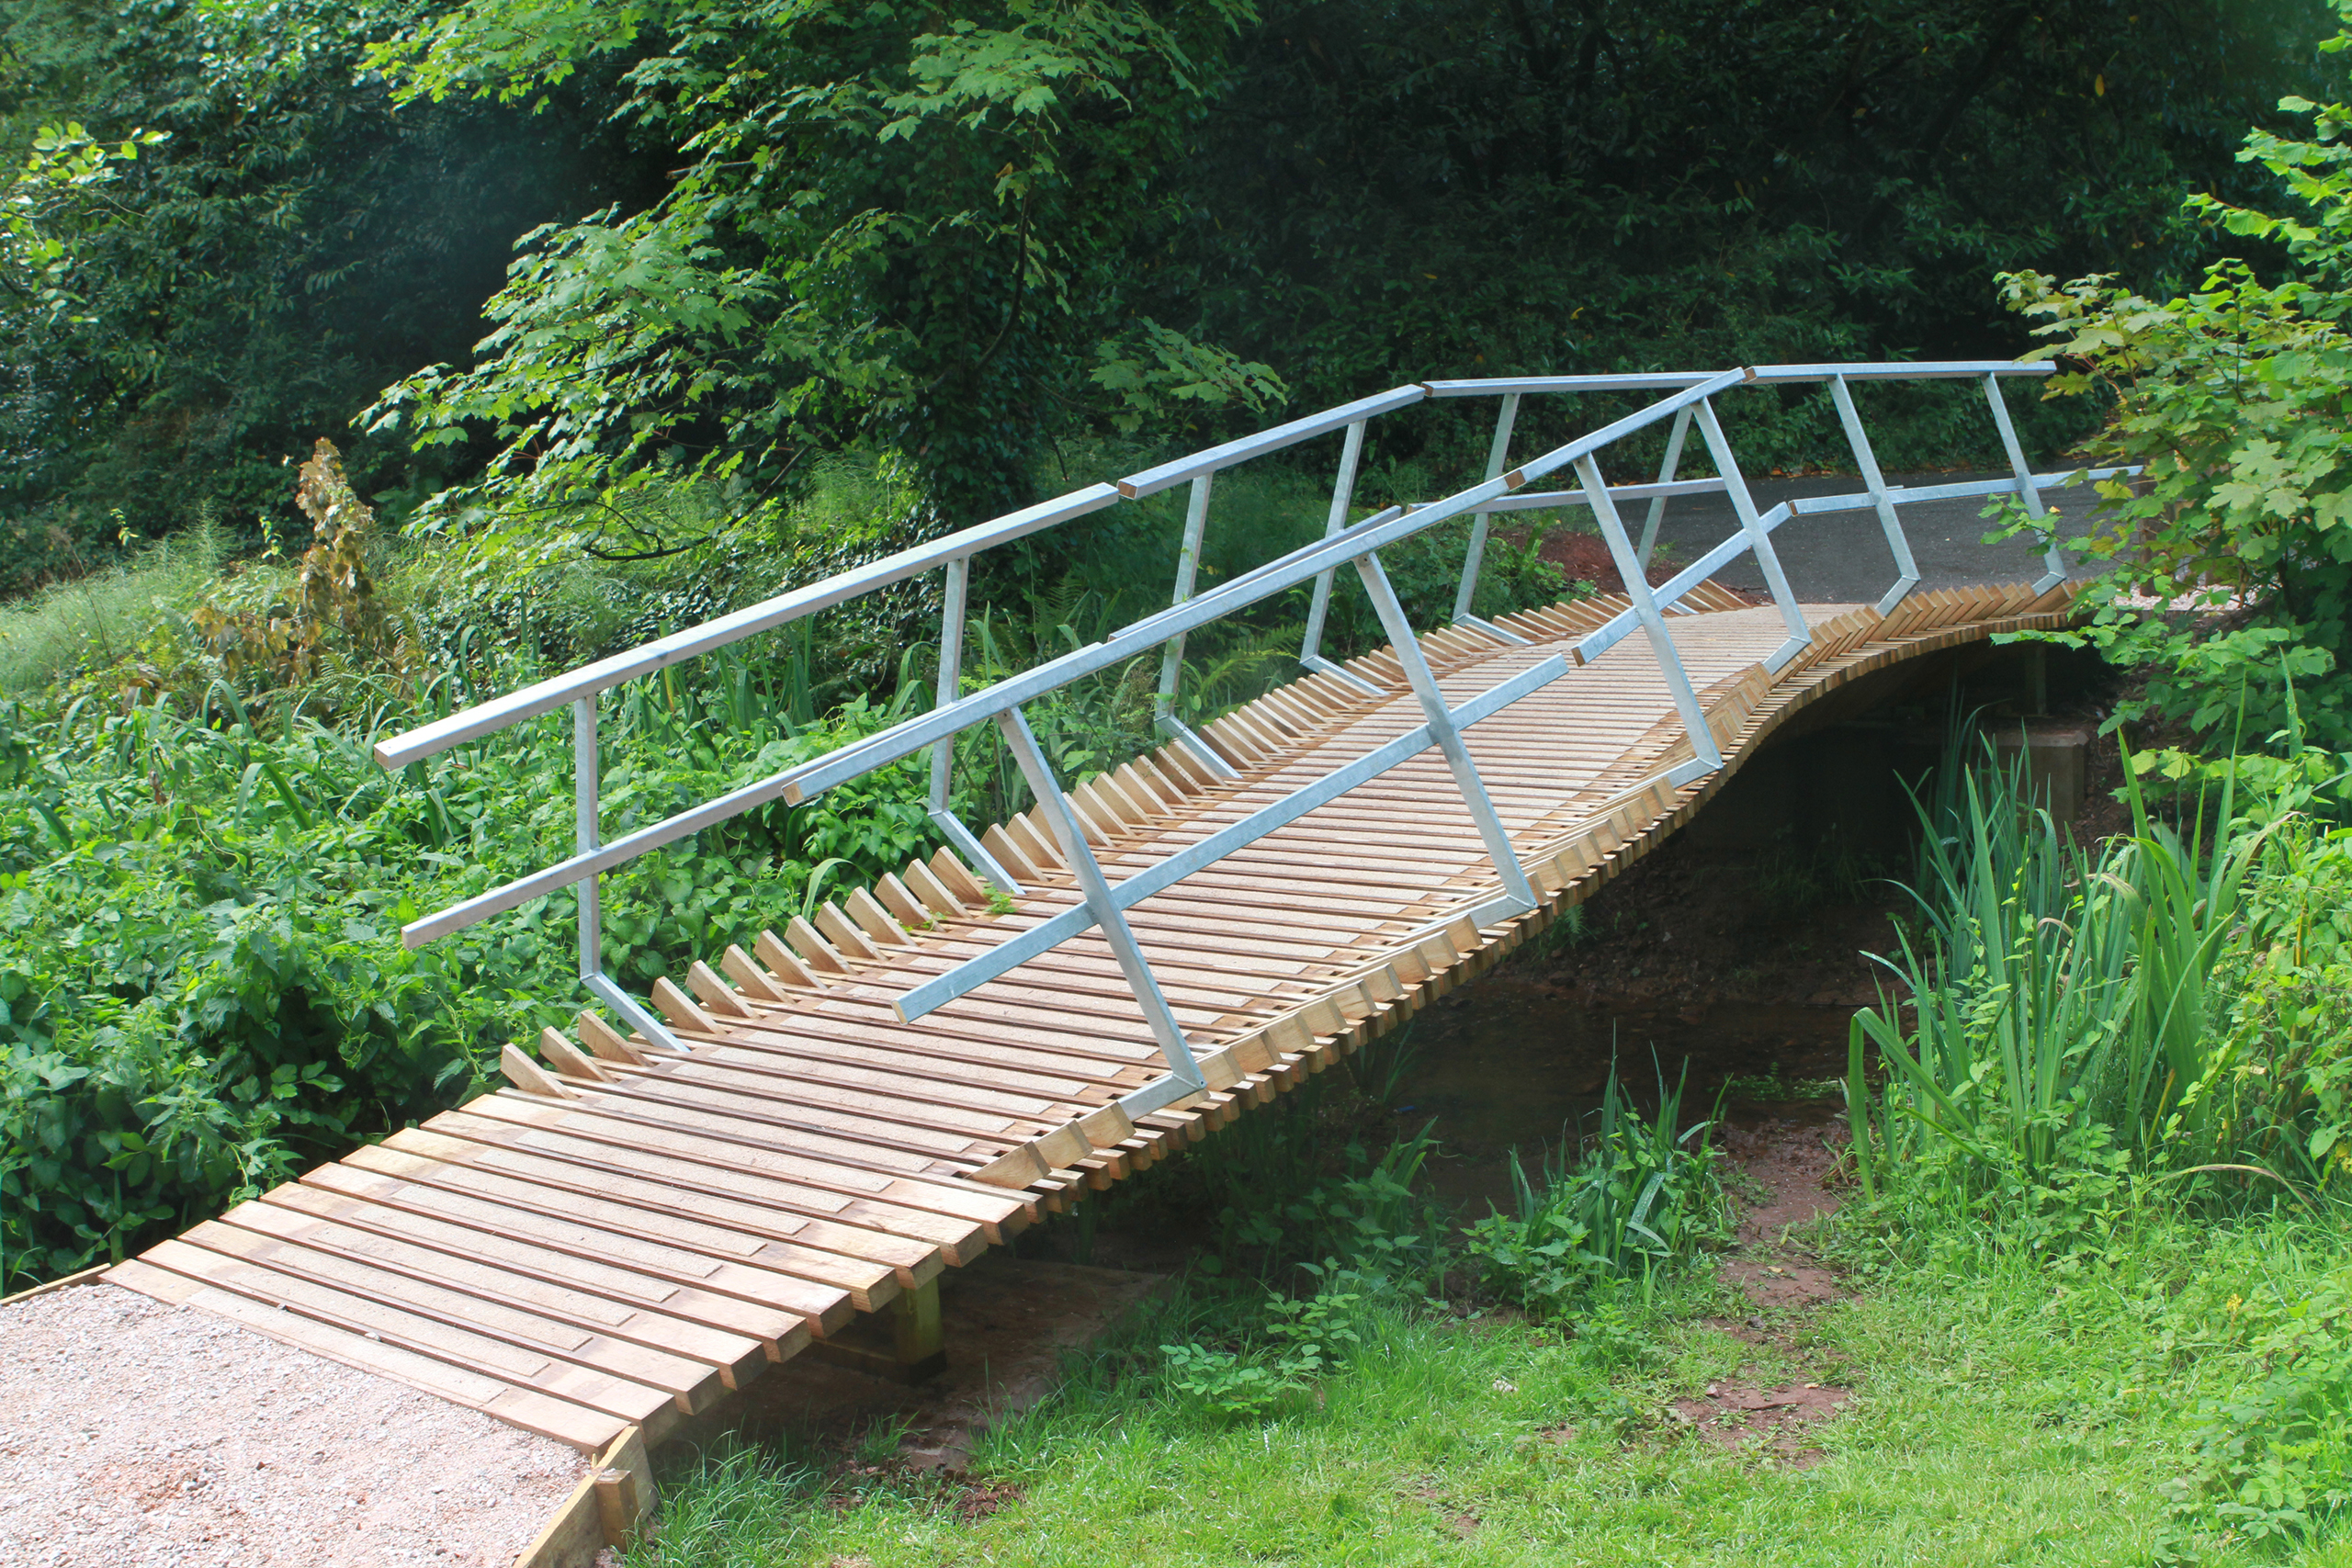 Cockington Foot Bridge